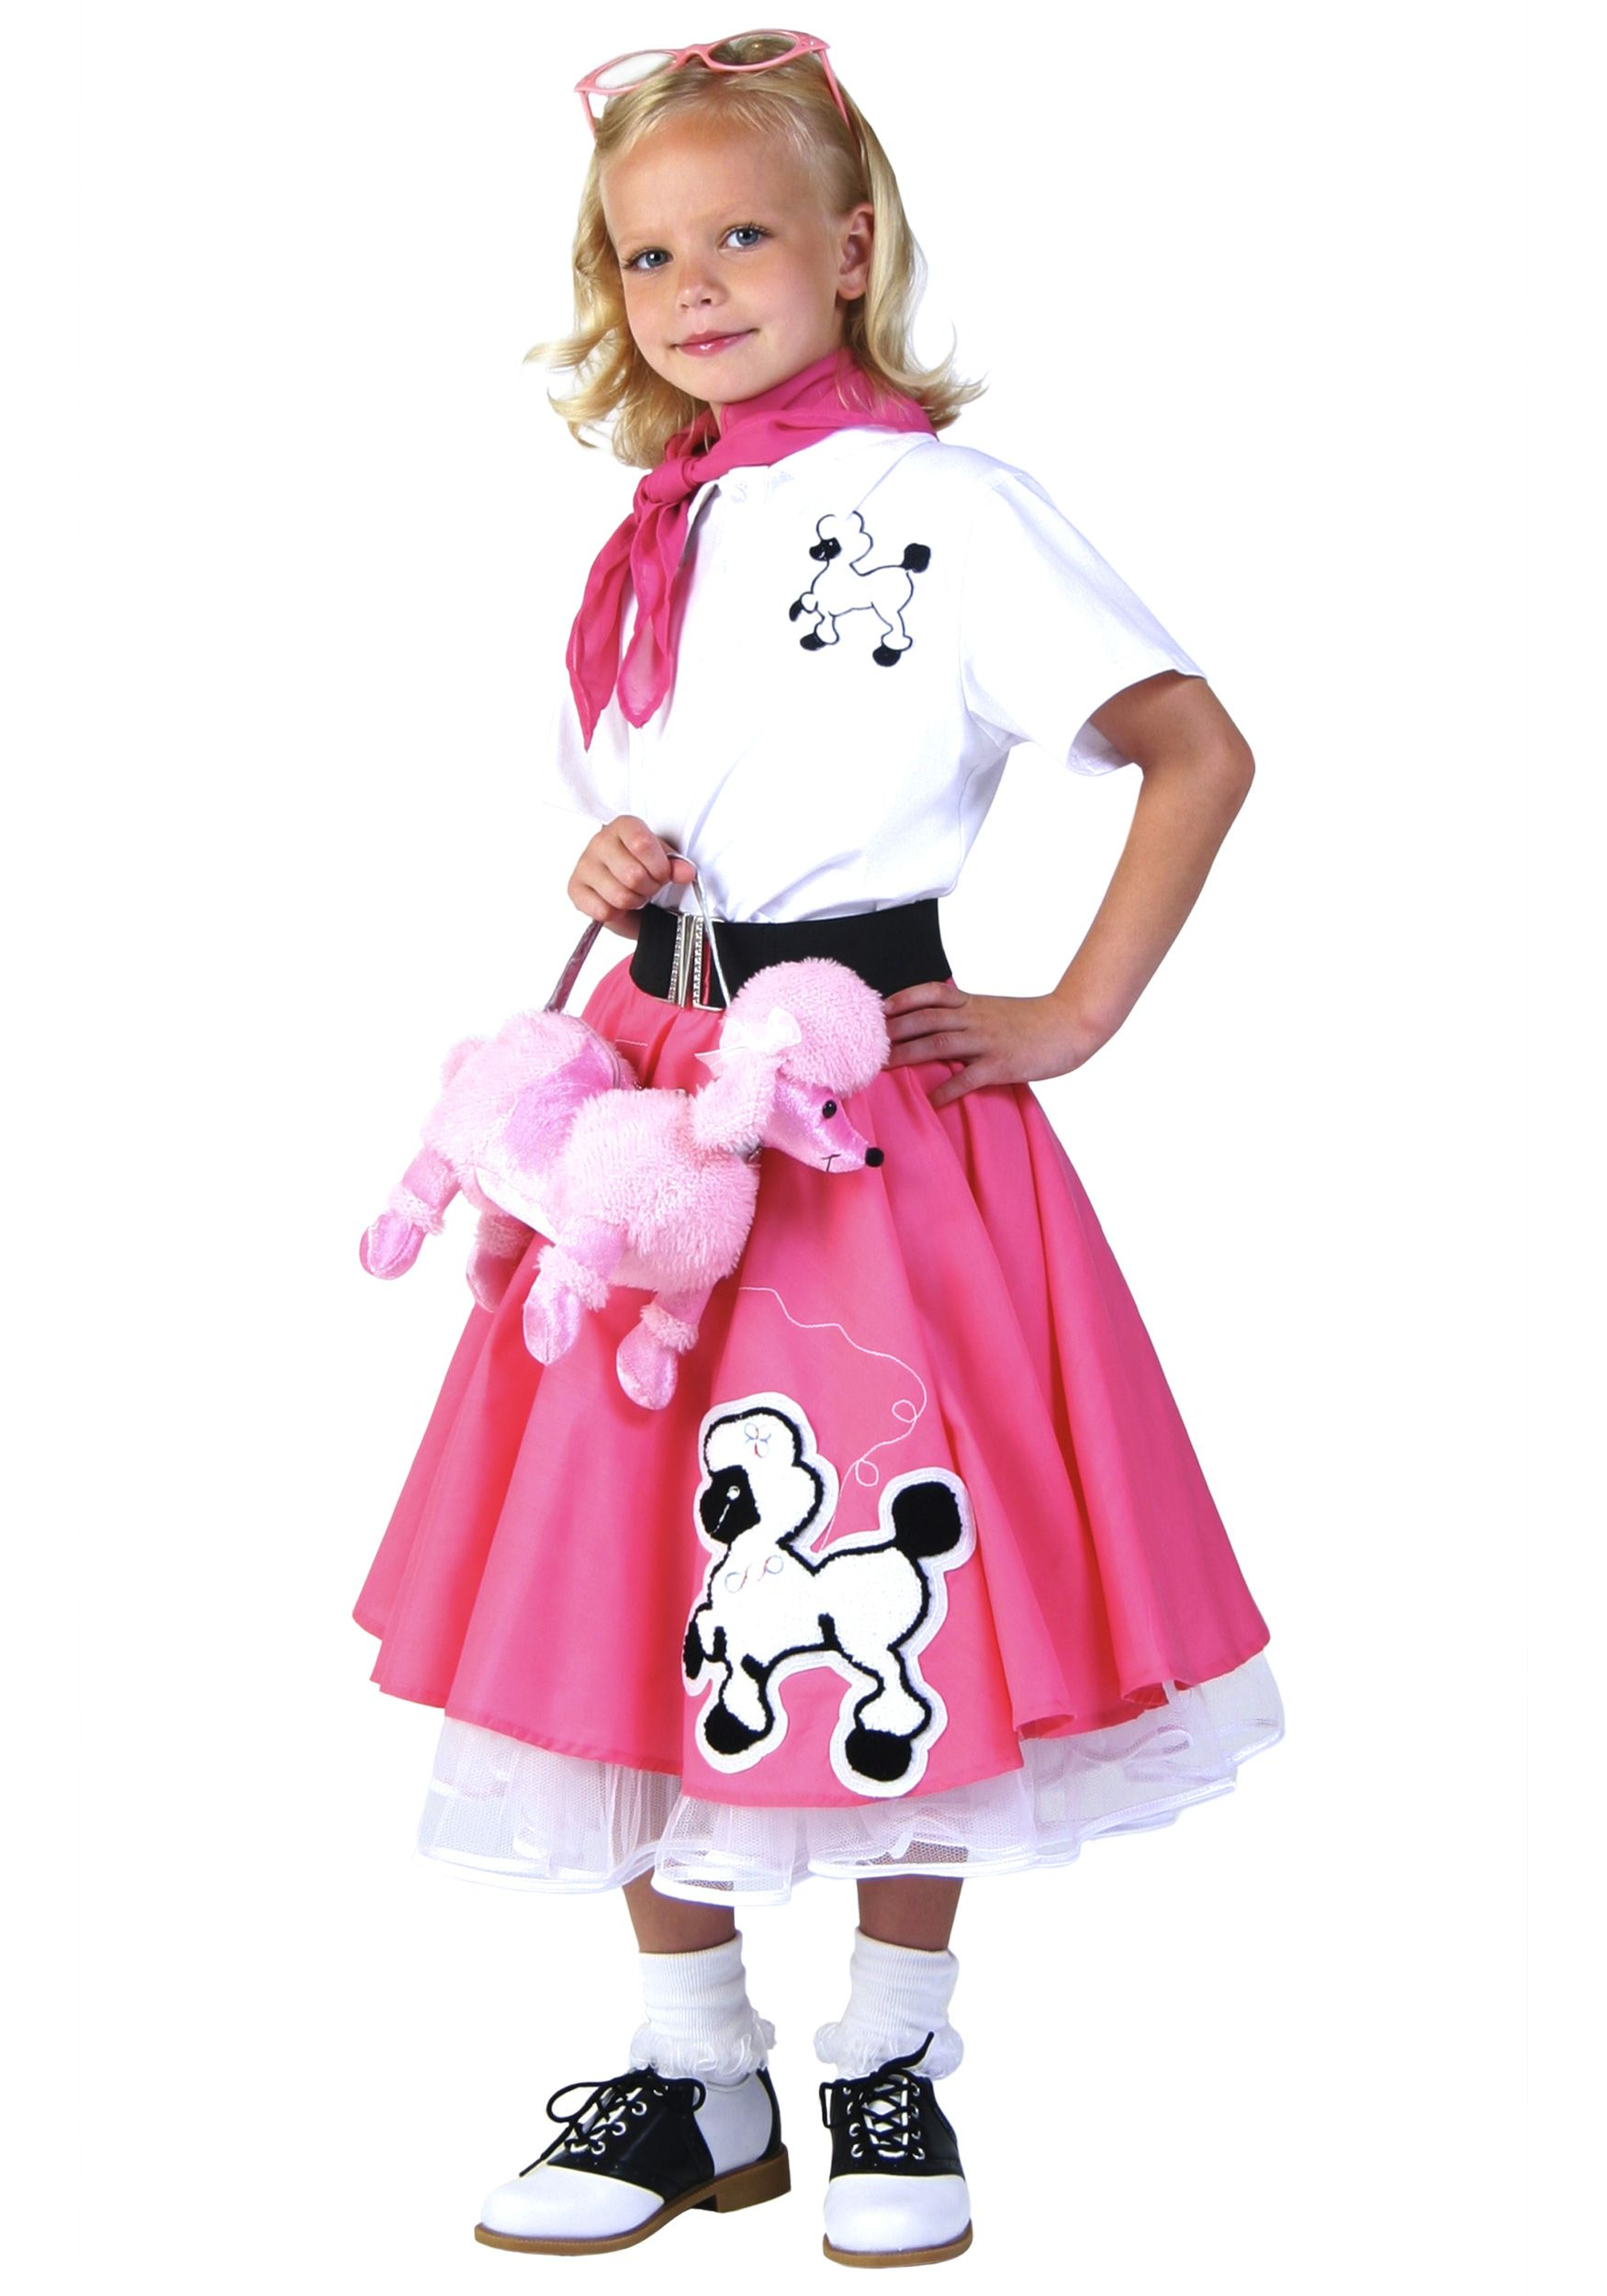 Halloween Costumes 2020 7th Grade This is marketed as a Halloween costume, but I wore a pink poodle